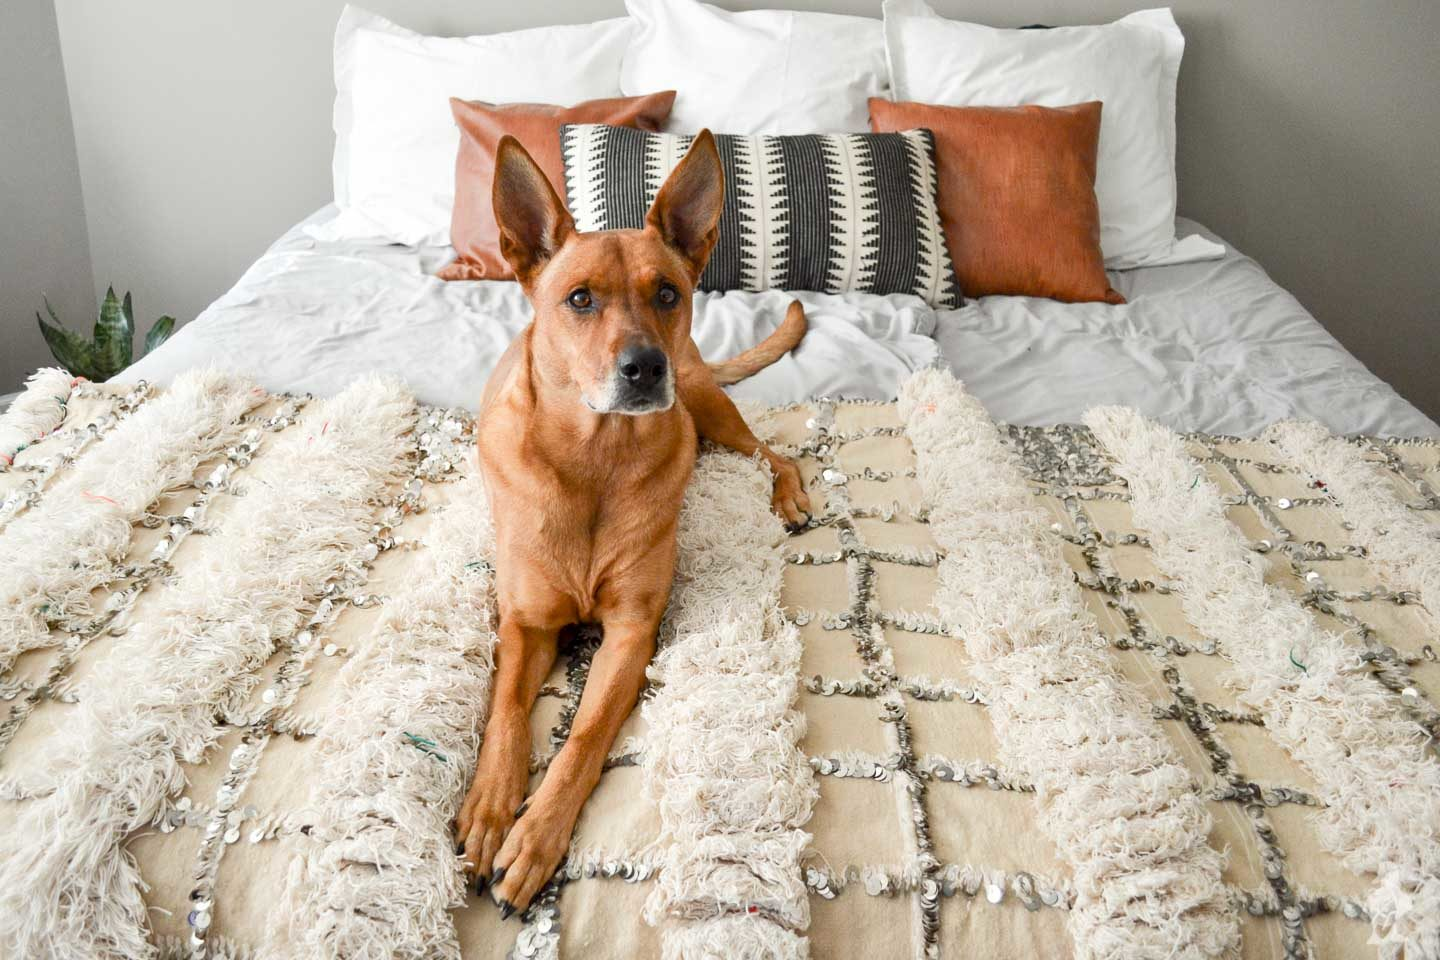 Charlie modeling master bedroom decor - moroccan wedding blanket and pillows